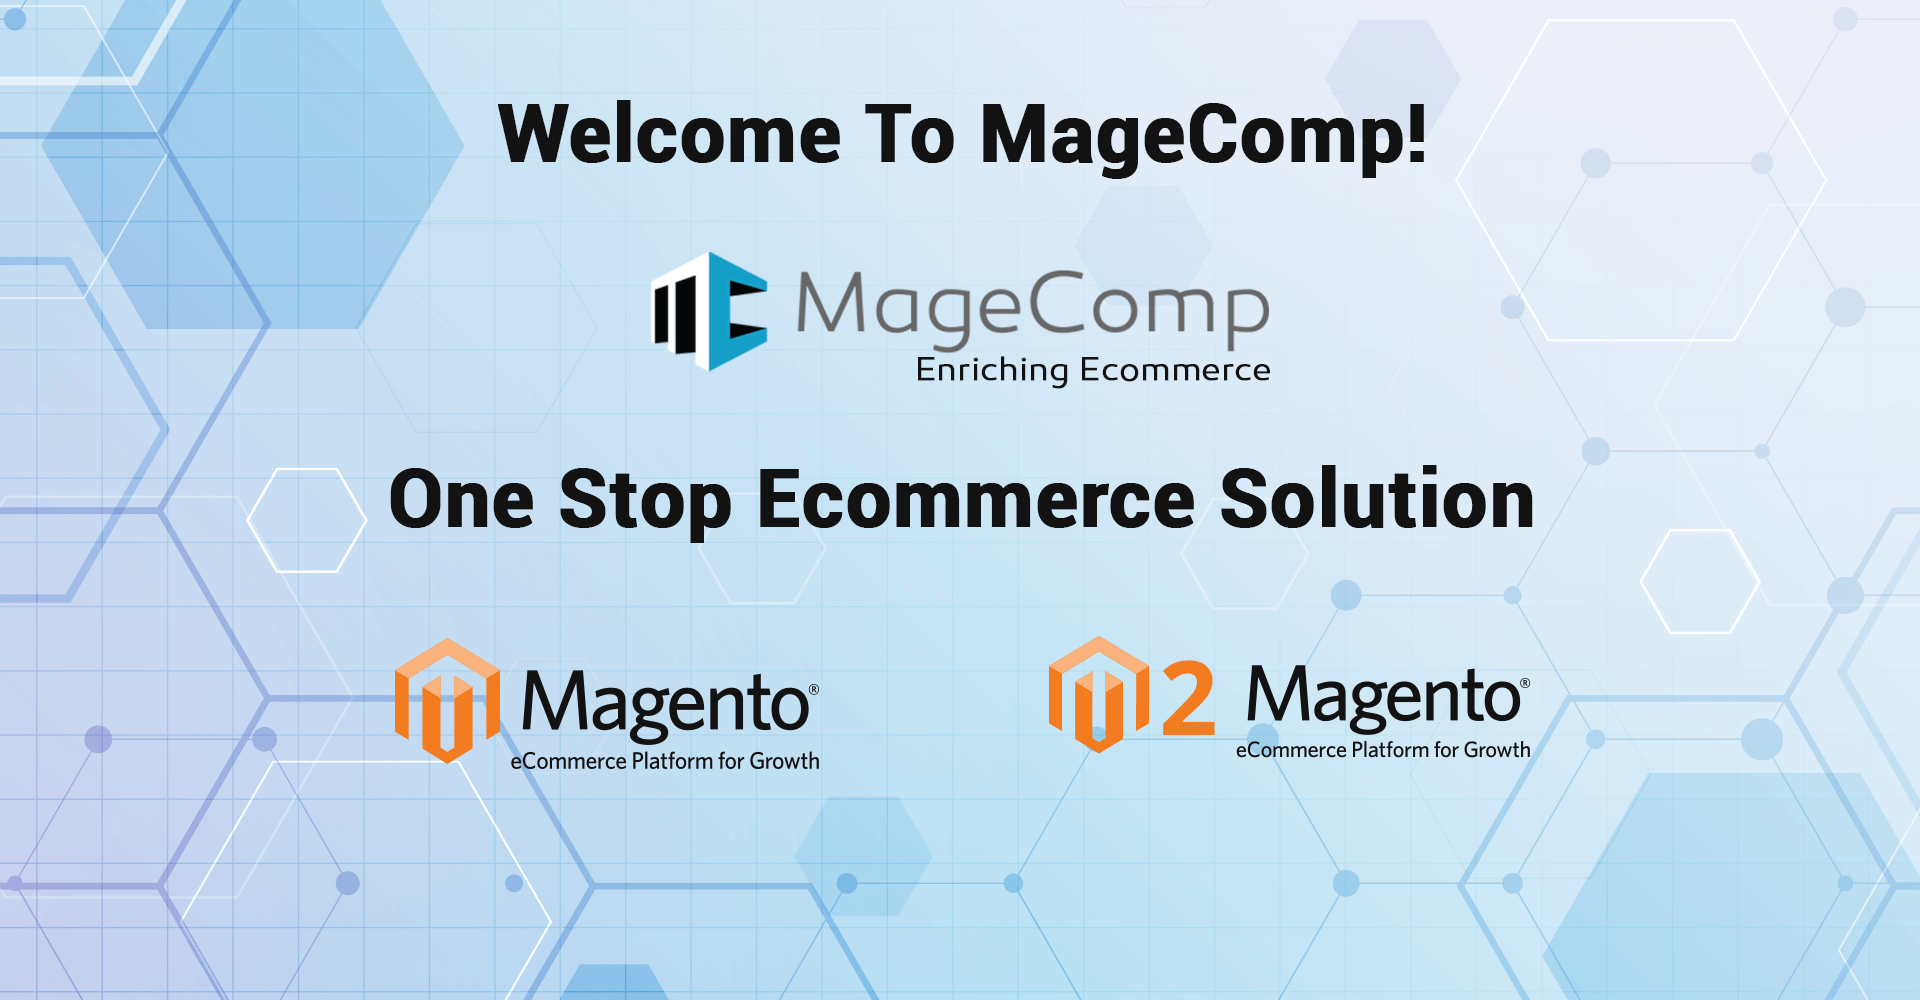 Welcome to MageComp